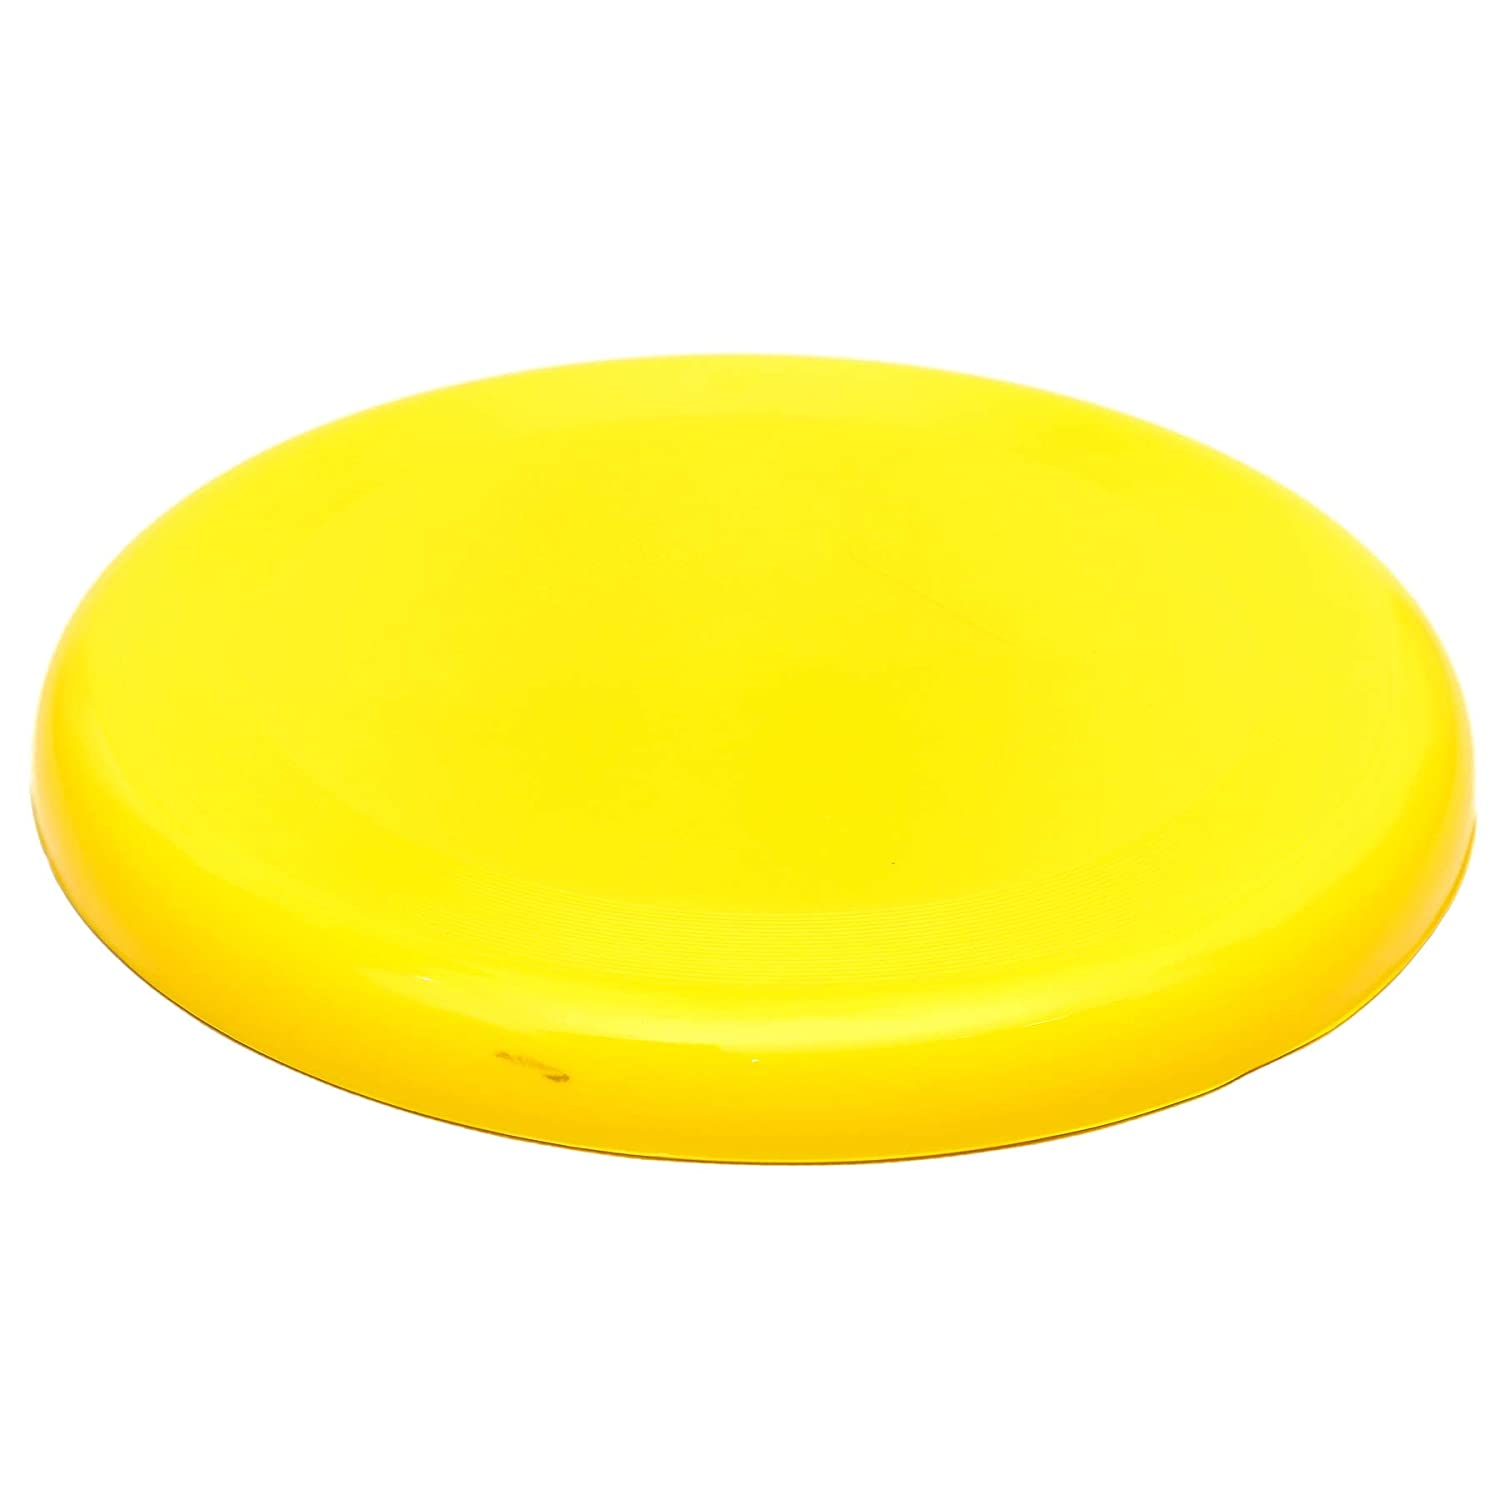 Frisbee - 9 Inches (Yellow)